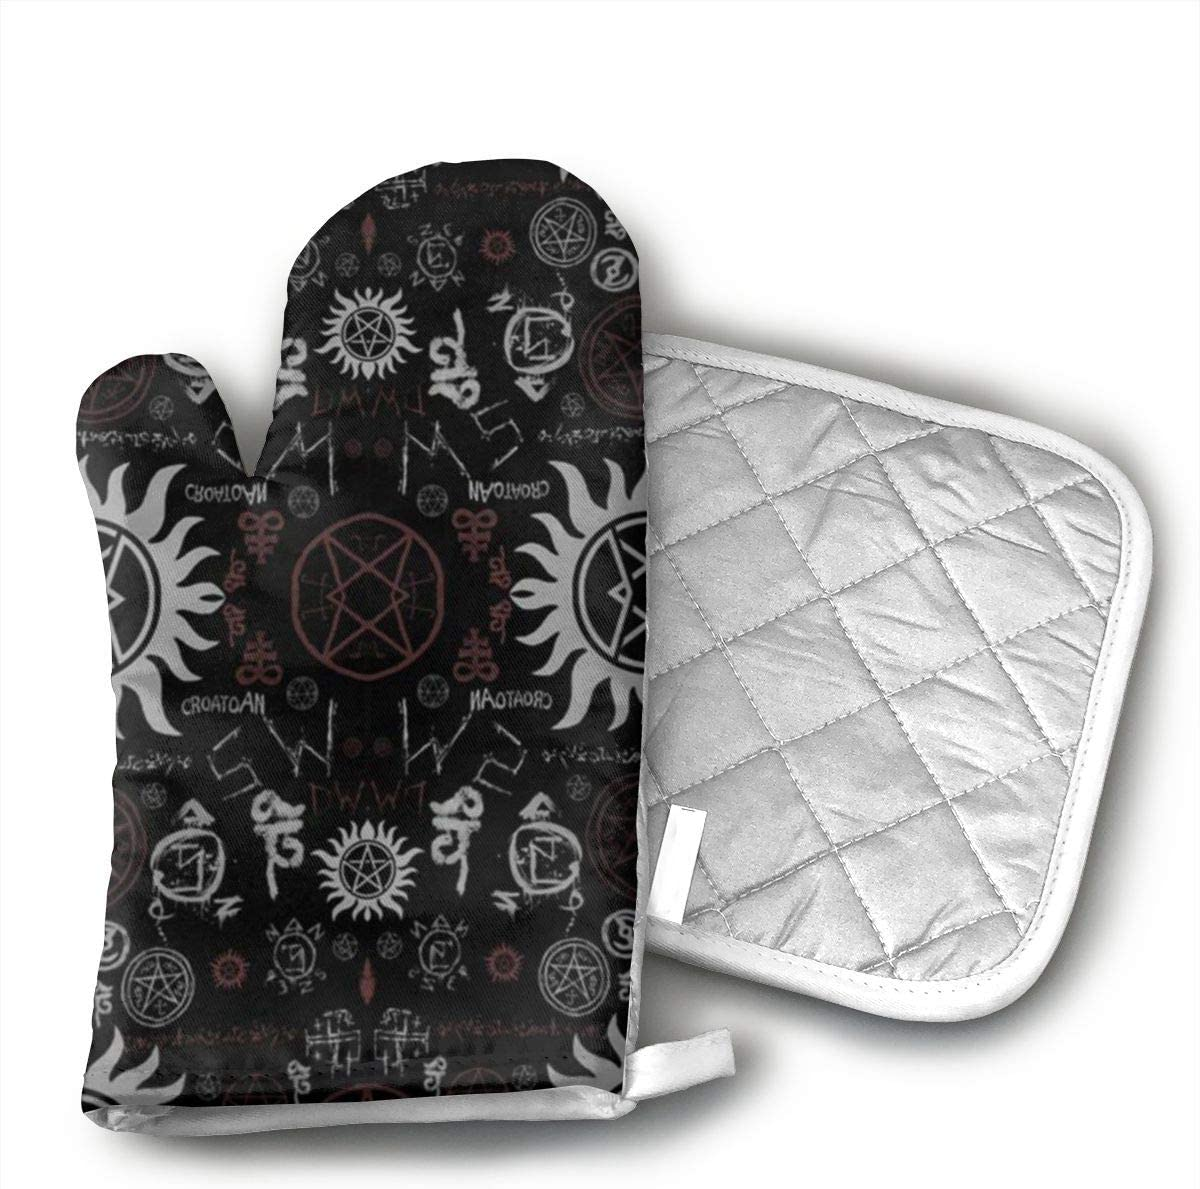 LZMBH Supernatural Symbols Black Heat Resistant Oven Mitts - Non-Slip Grip Pot Holders for Kitchen Cooking Baking, up to 450 F Degrees Heat Resistant